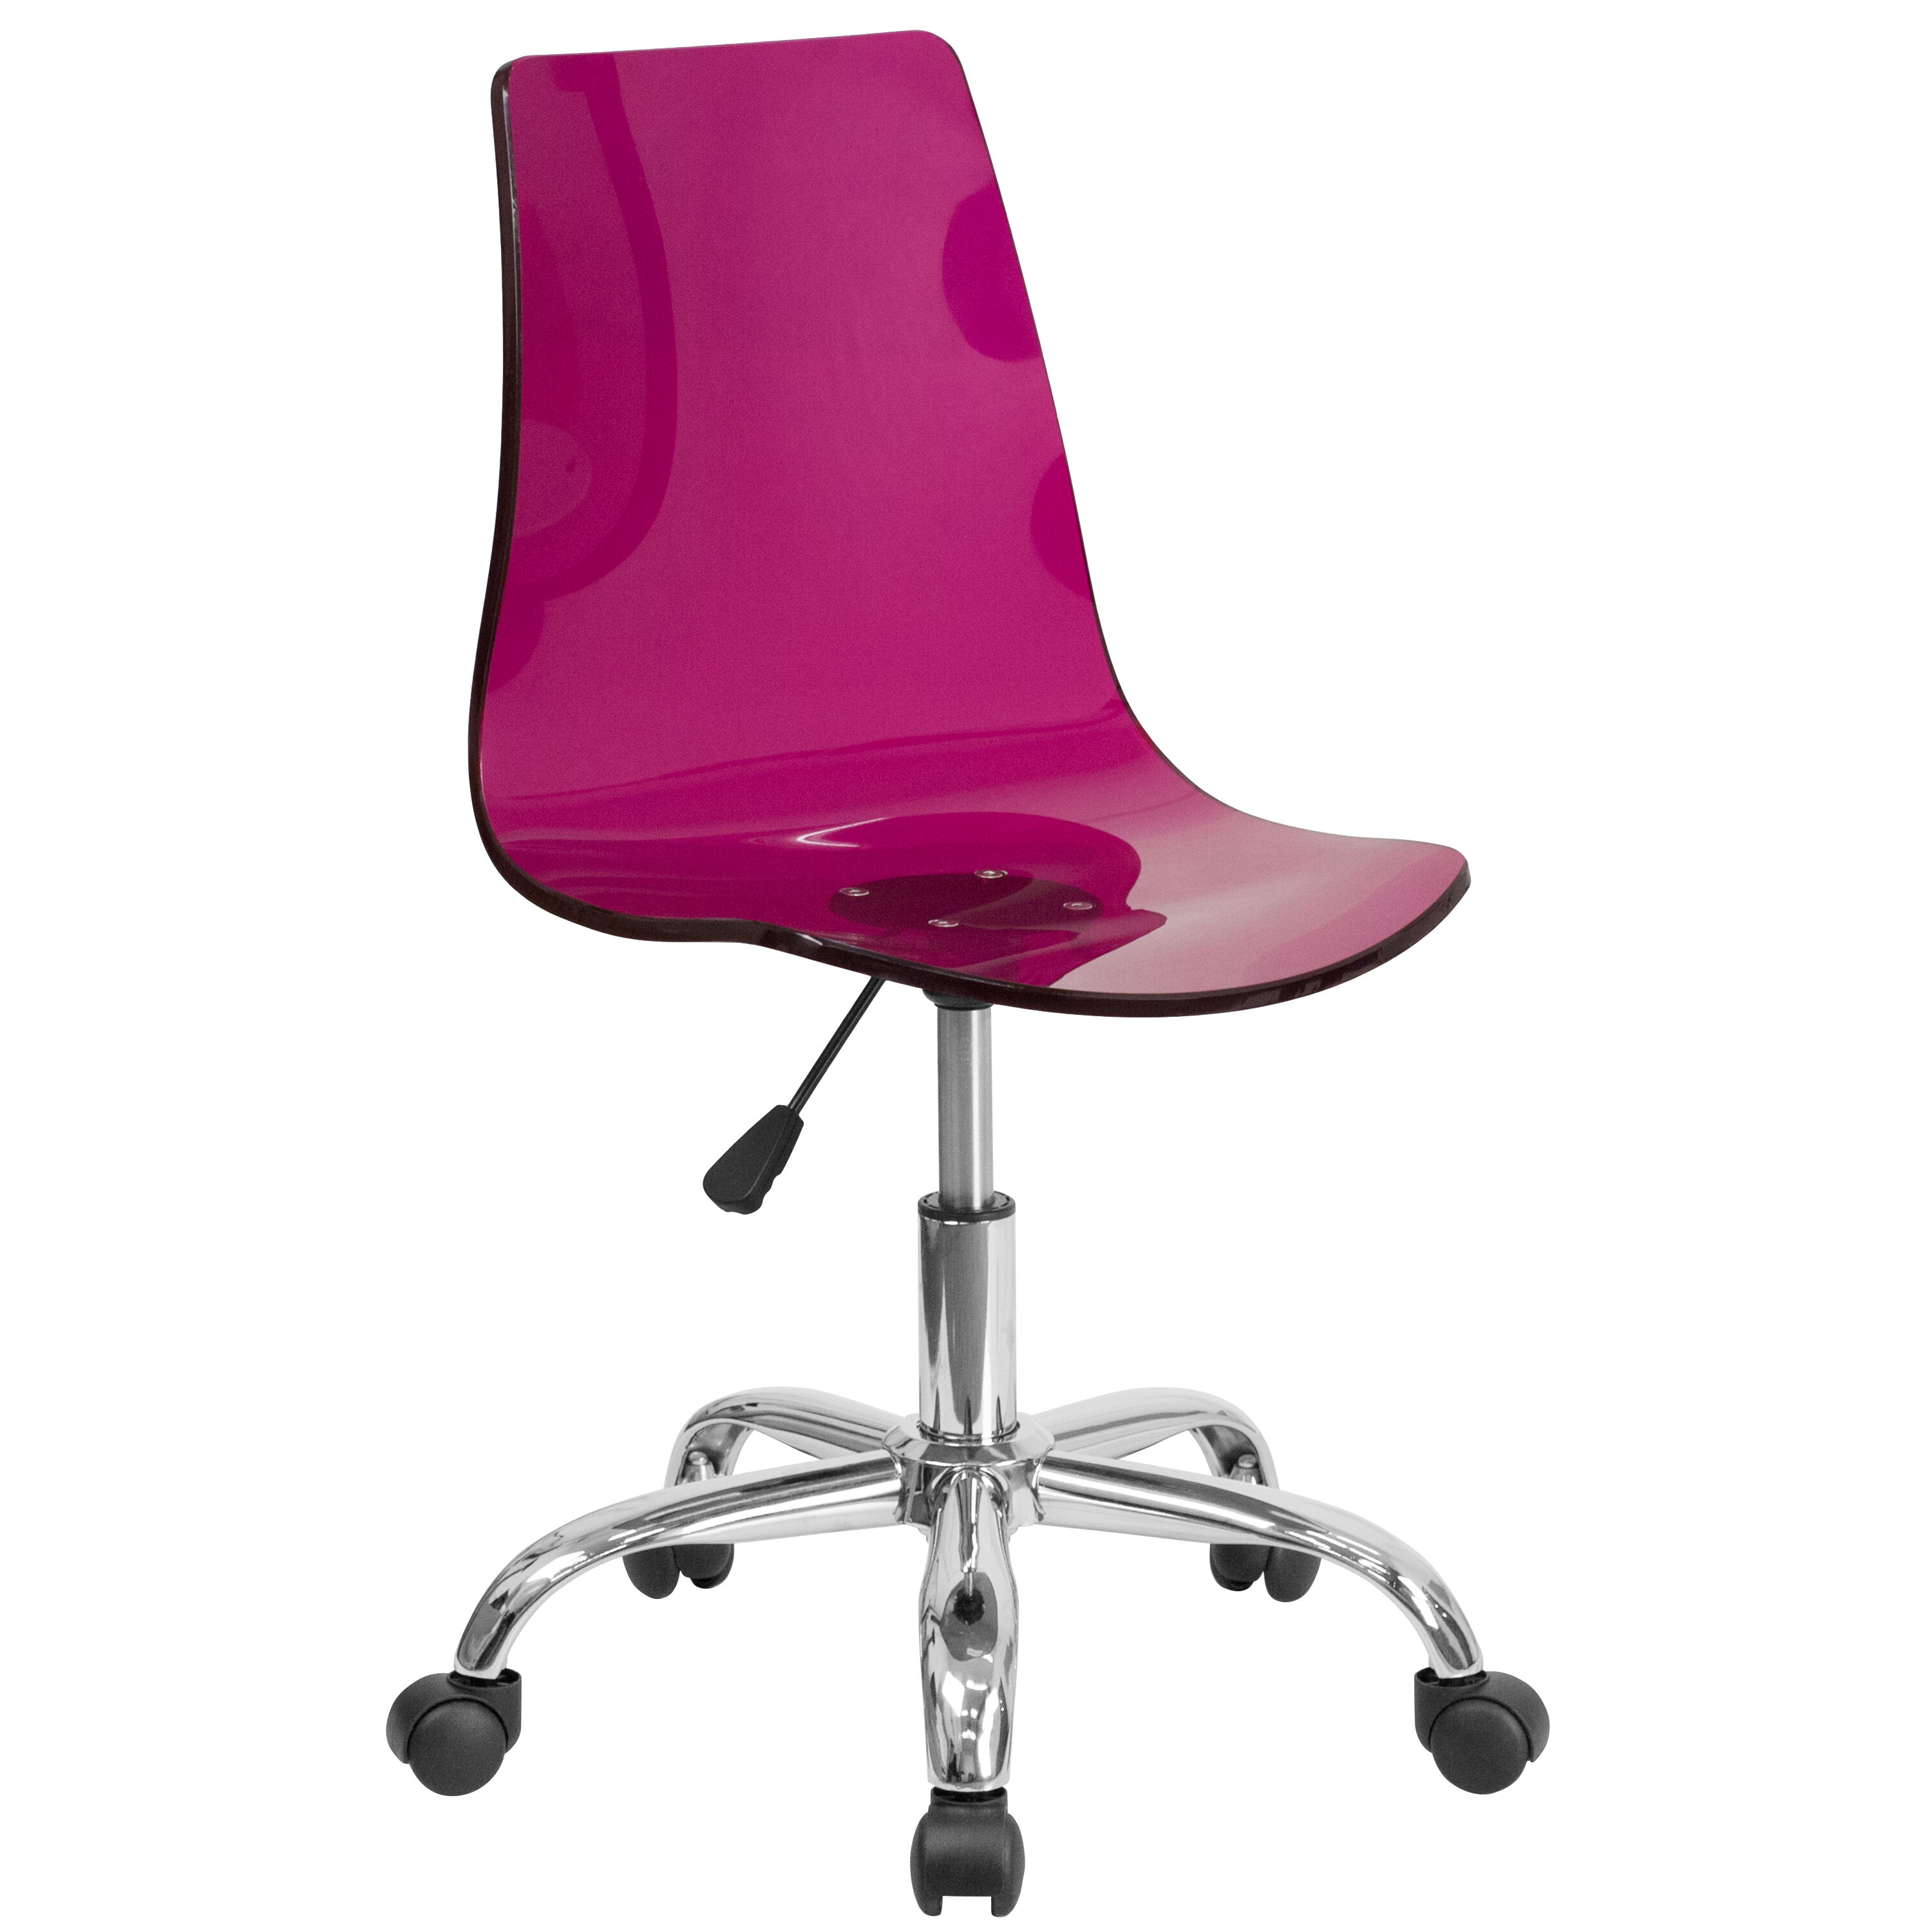 Superbe Our Contemporary Transparent Purple Acrylic Swivel Task Chair With Chrome  Base Is On Sale Now.